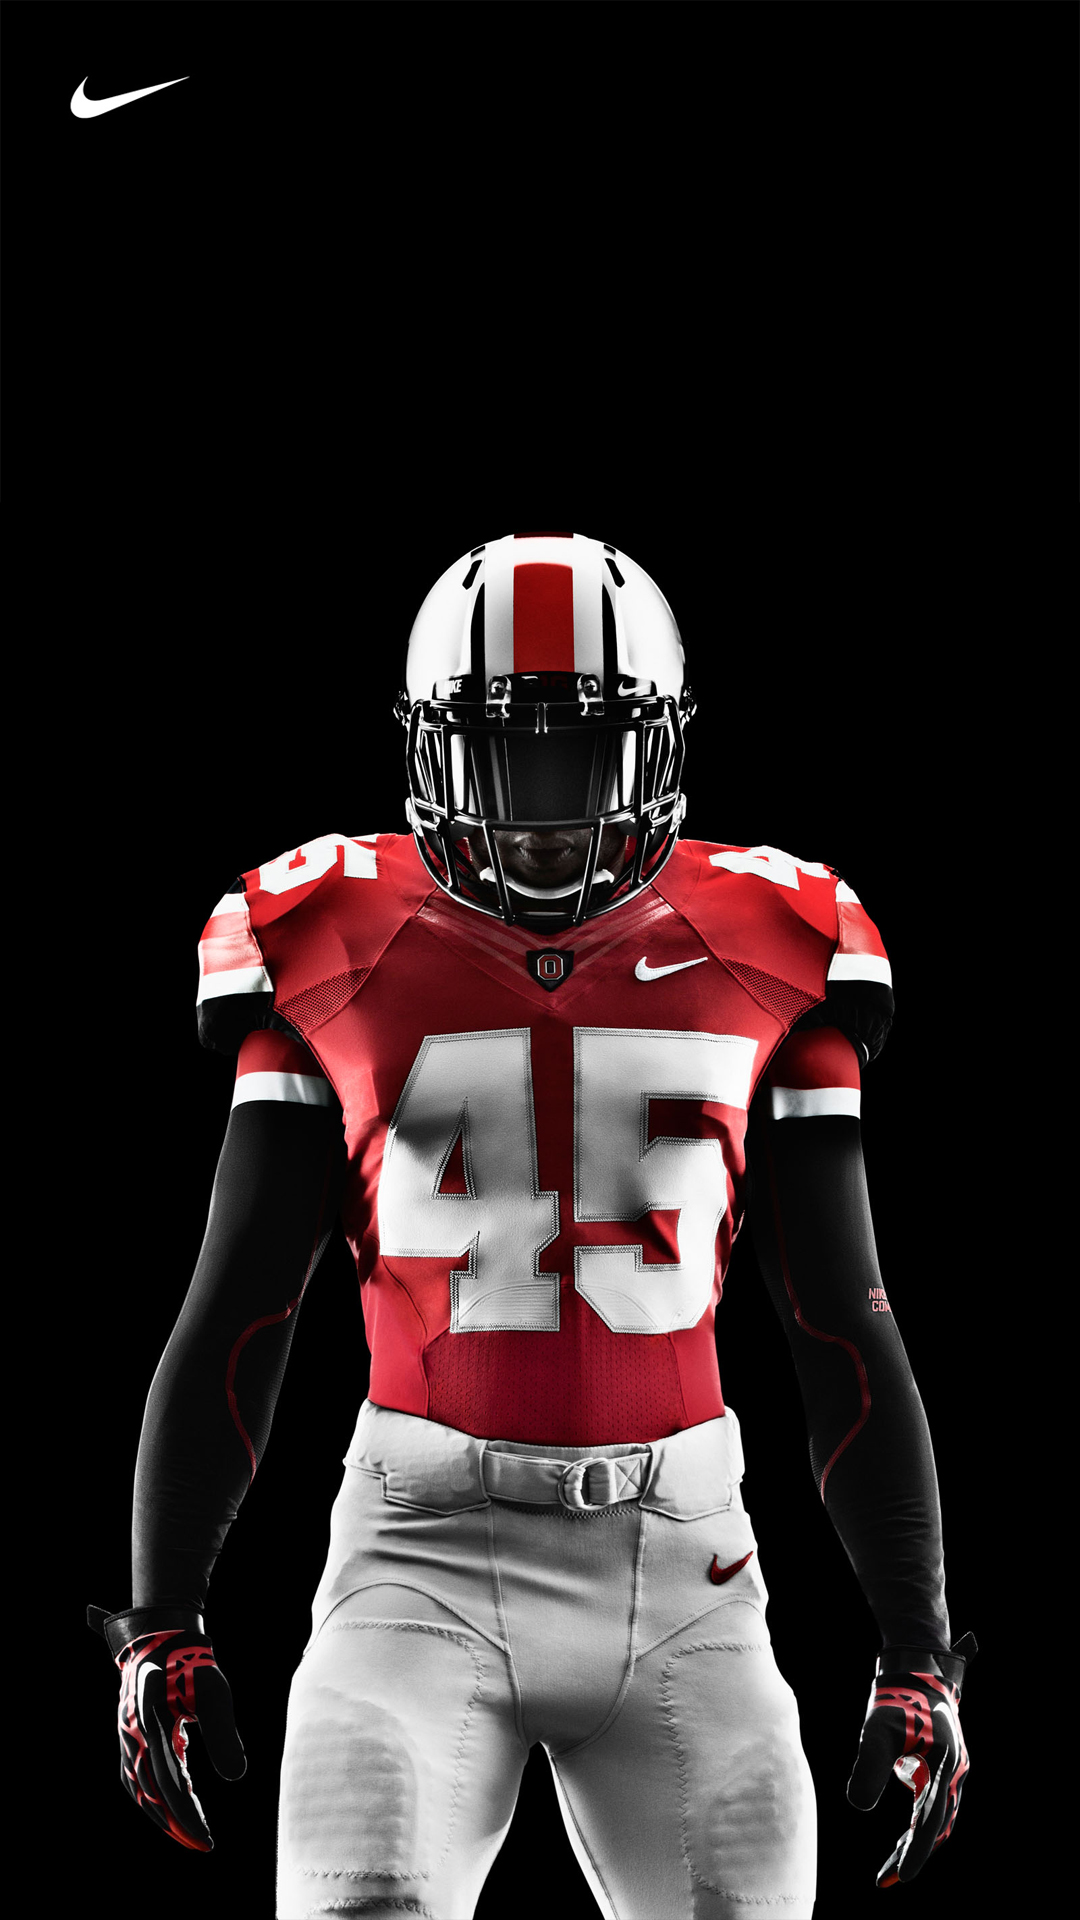 Ohio State Nike Pro Combat Football Uniform - Best htc one wallpapers